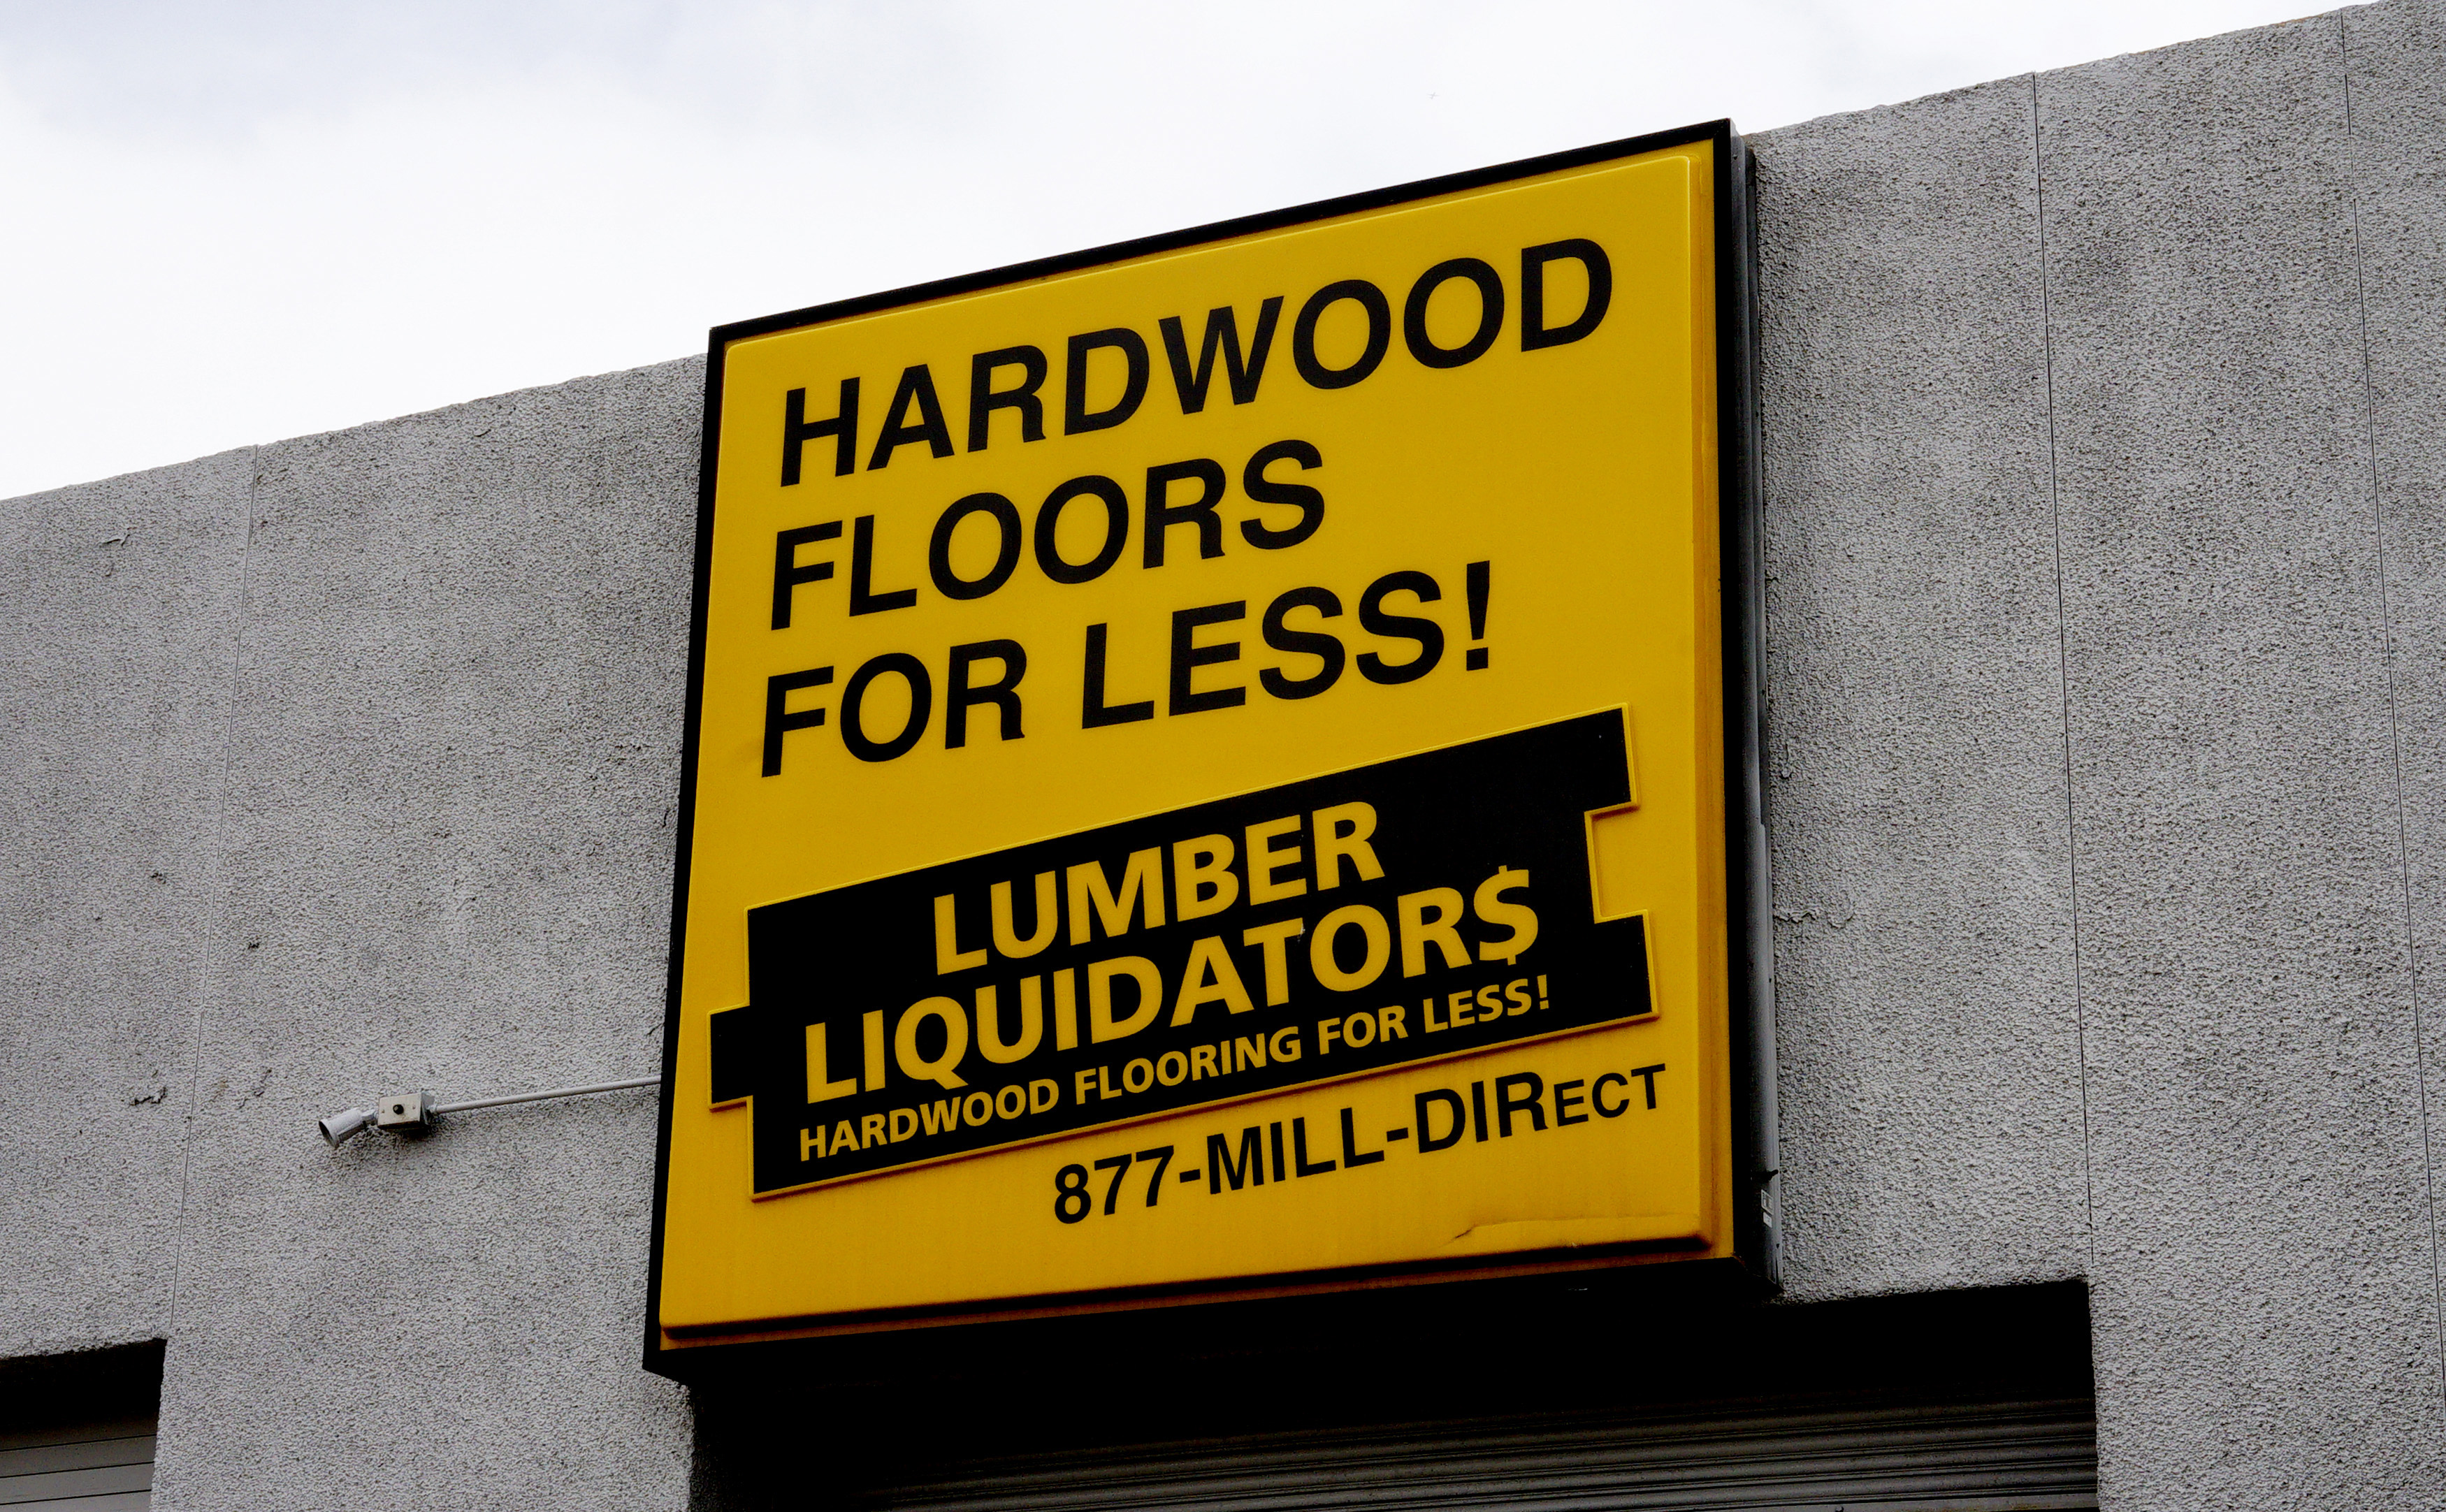 The sign outside the Lumber Liquidators store in Denver